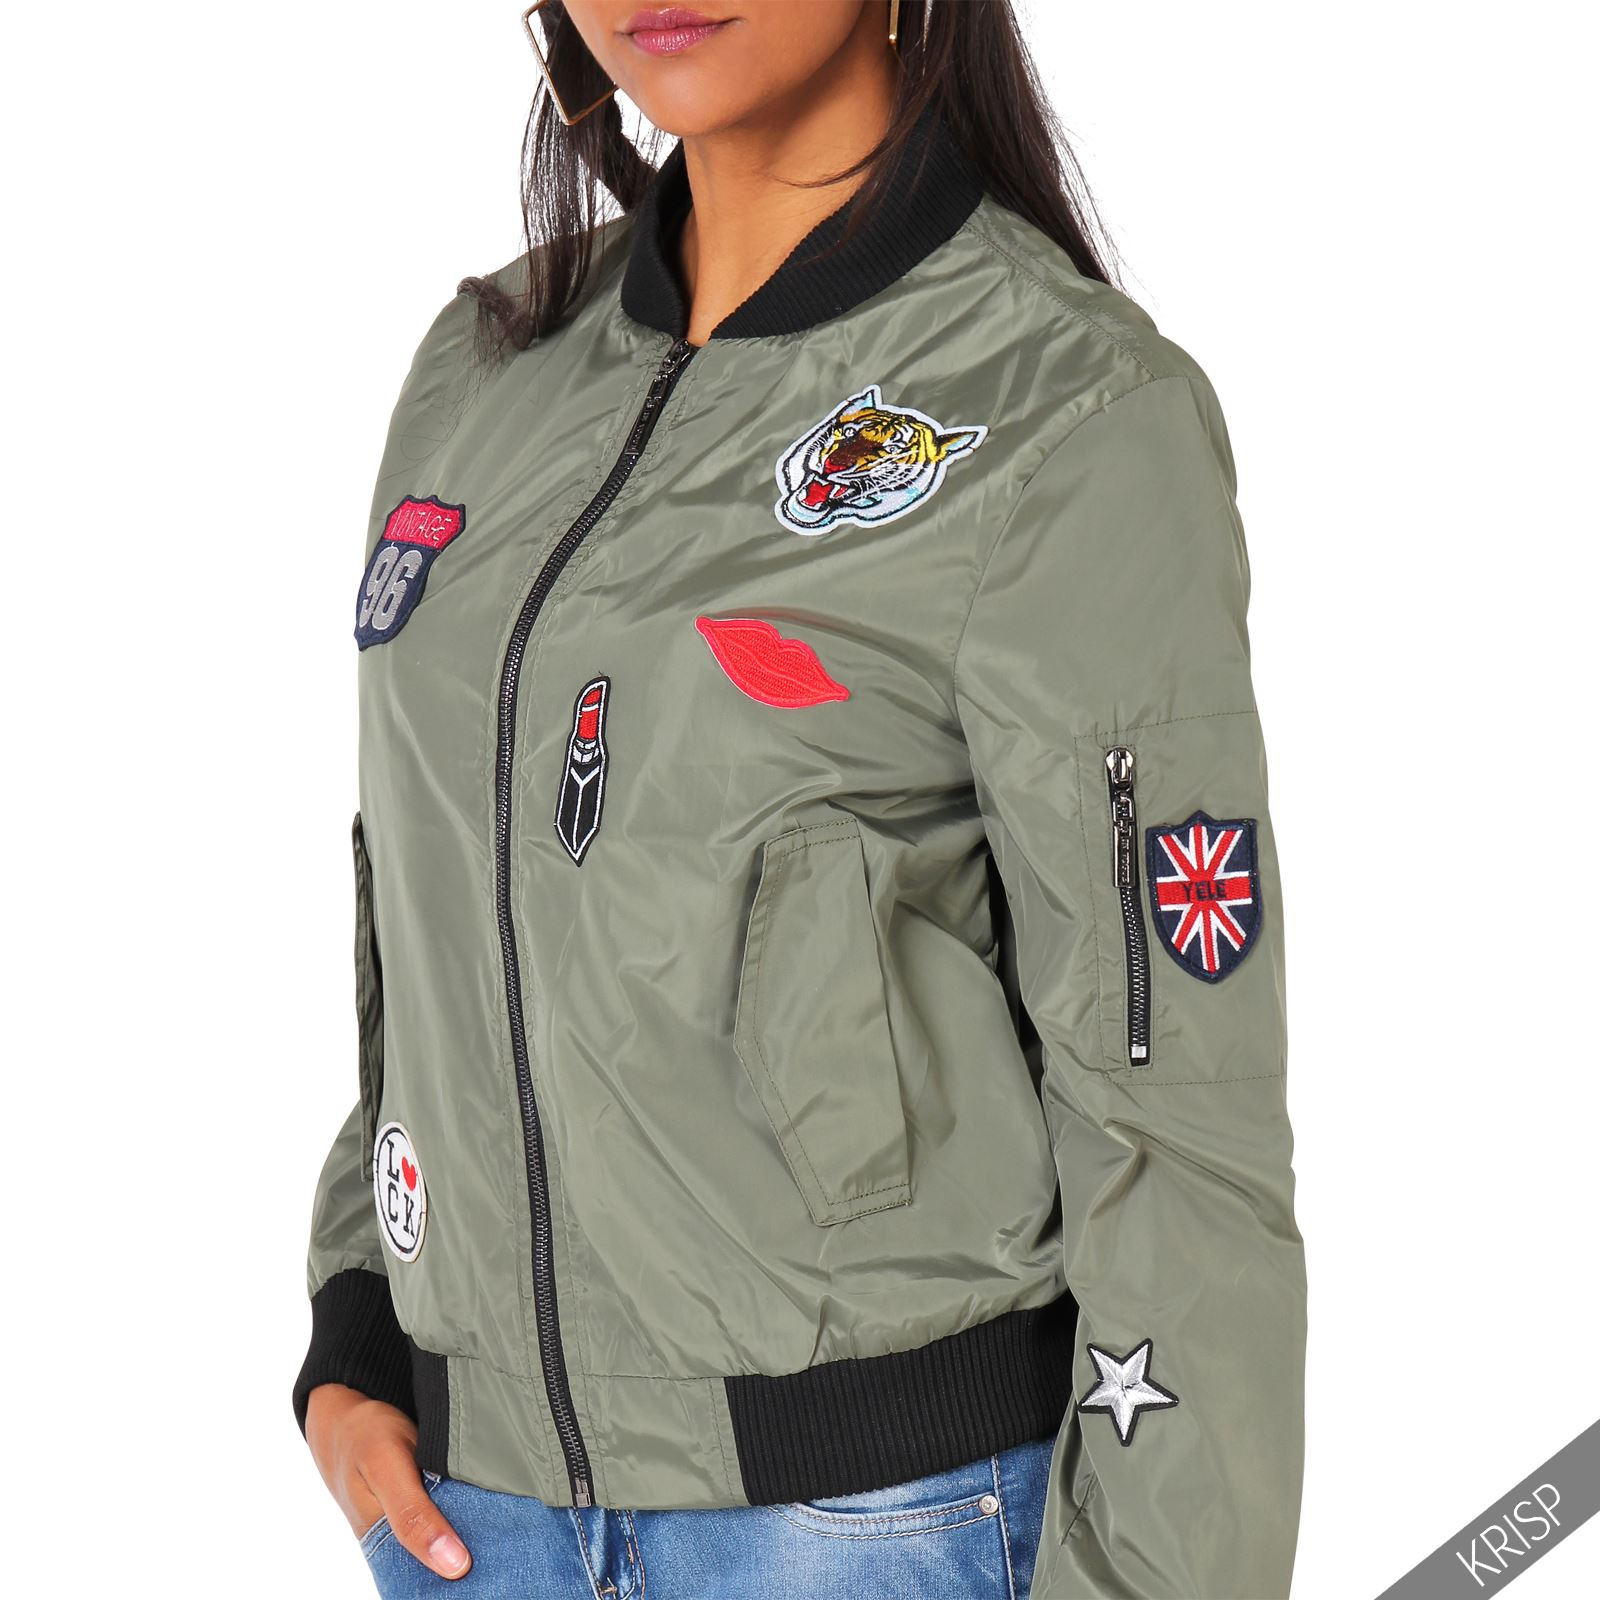 damen bomberjacke army patch sticker blouson jacke. Black Bedroom Furniture Sets. Home Design Ideas